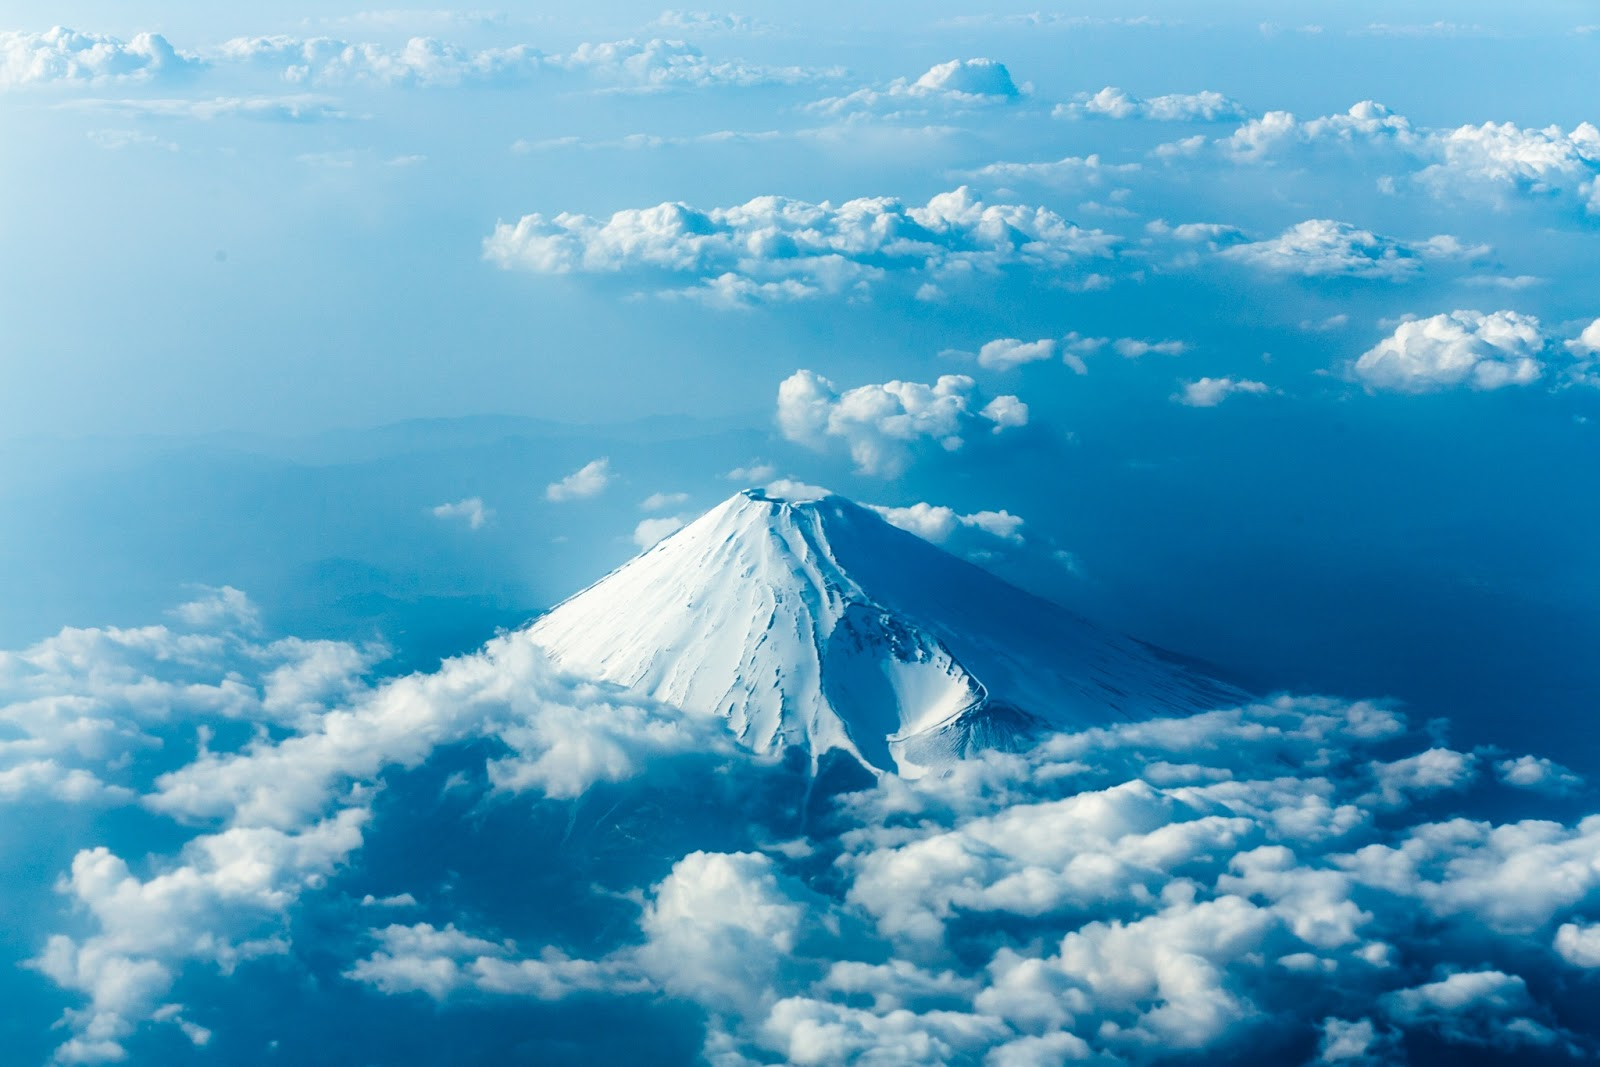 Mt. Fuji from the sky by Toshio Kawai